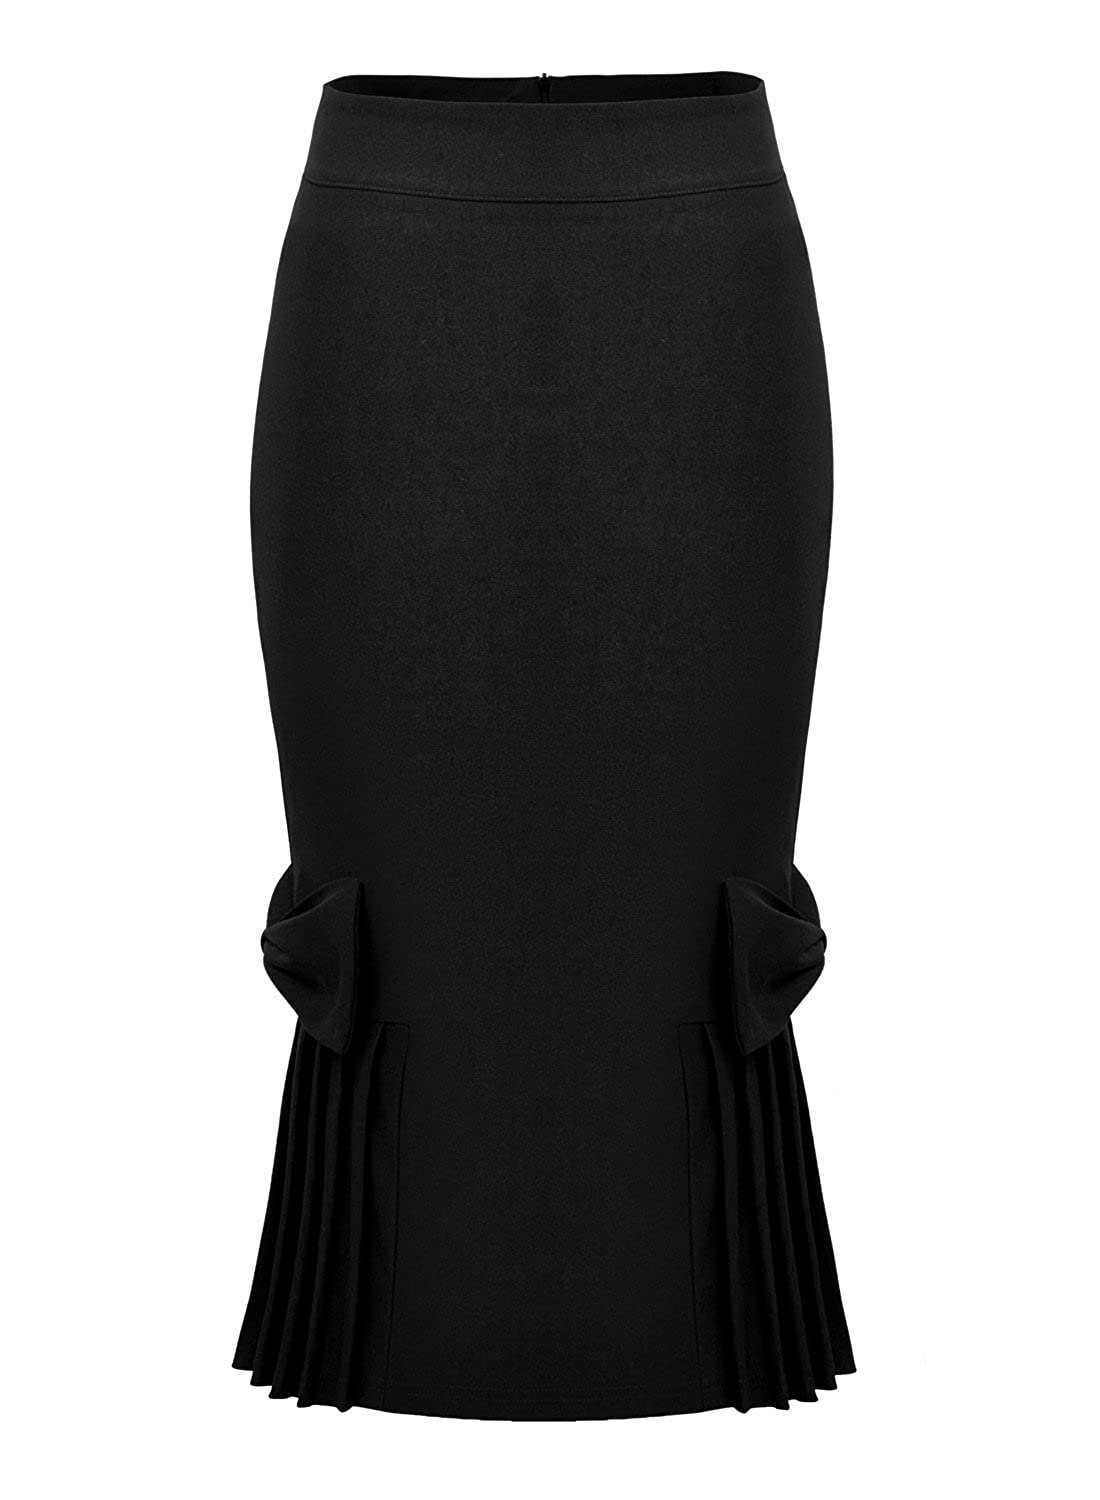 Missmay Damen kleid Knielang Stretch Business Rock Abendkleid Cocktail Etuikleid schwarz Gr.S-XXL